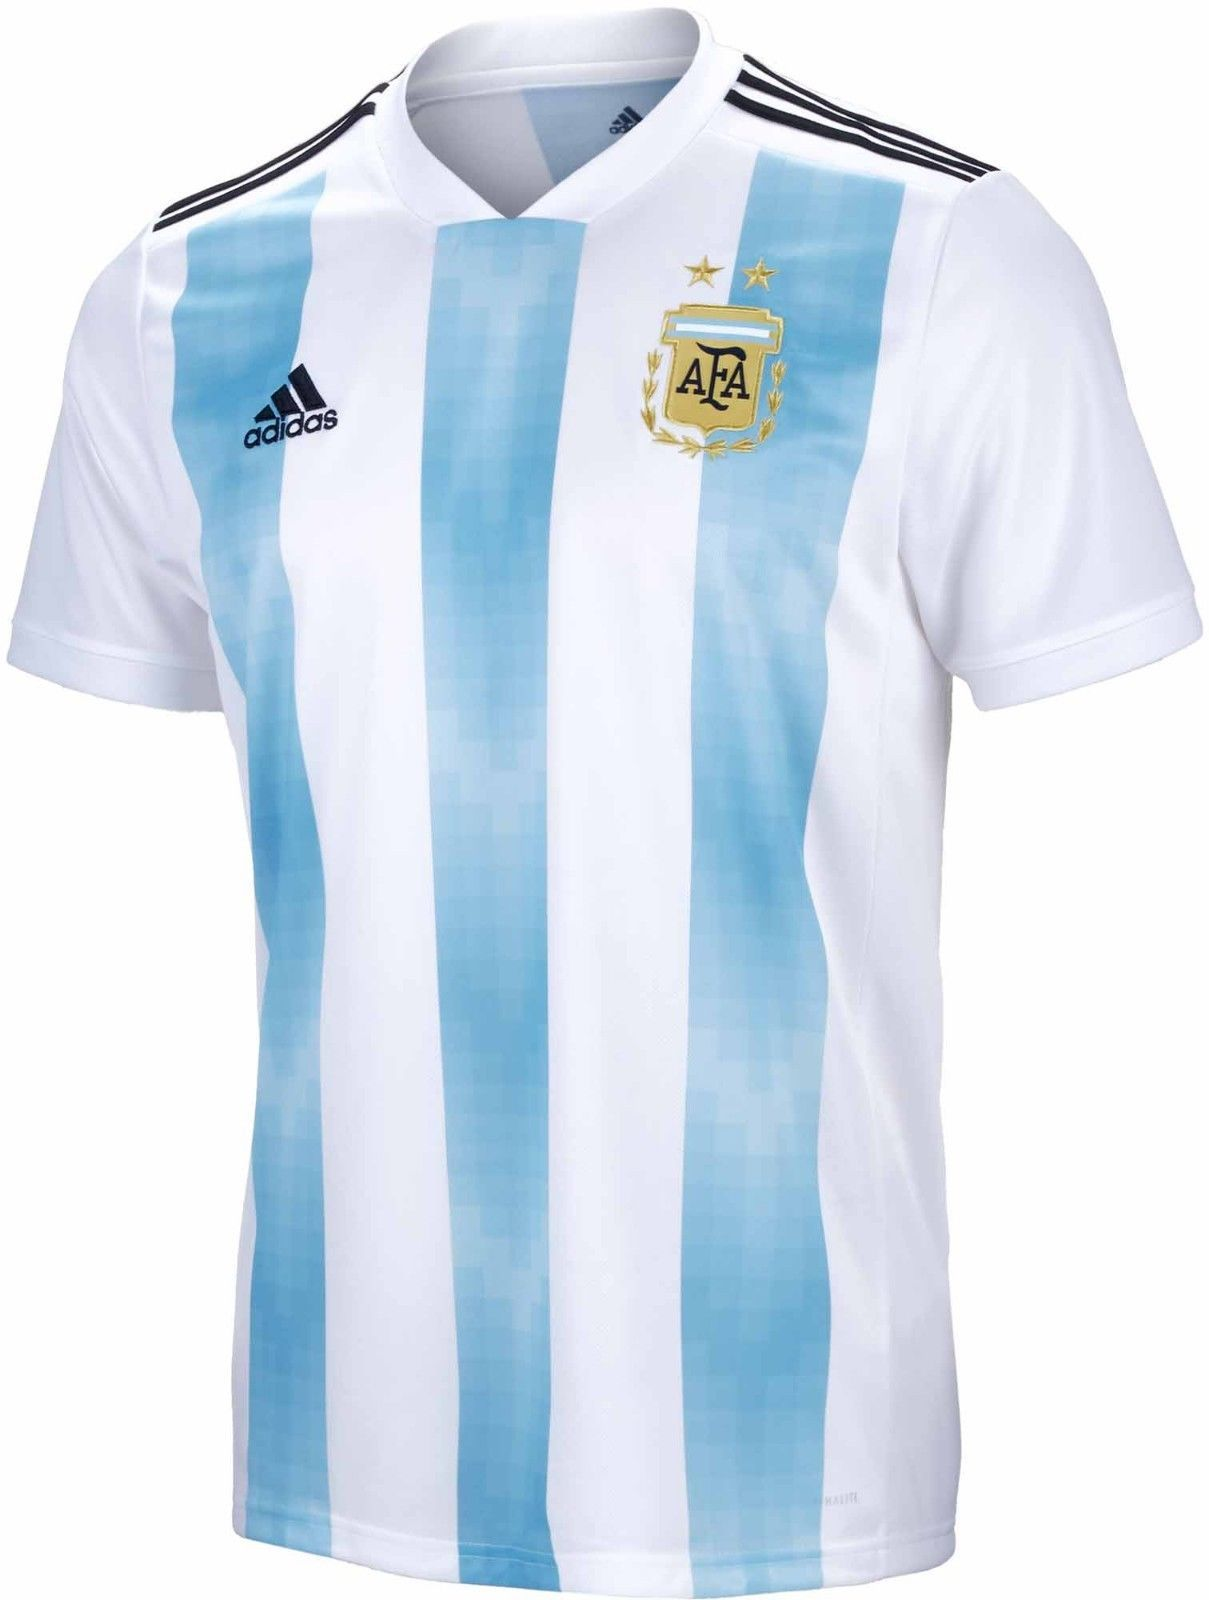 bf11b5d6c 2018 World Cup Argentina National Soccer Team Jersey Mens Adidas BQ9324  (eBay Link)